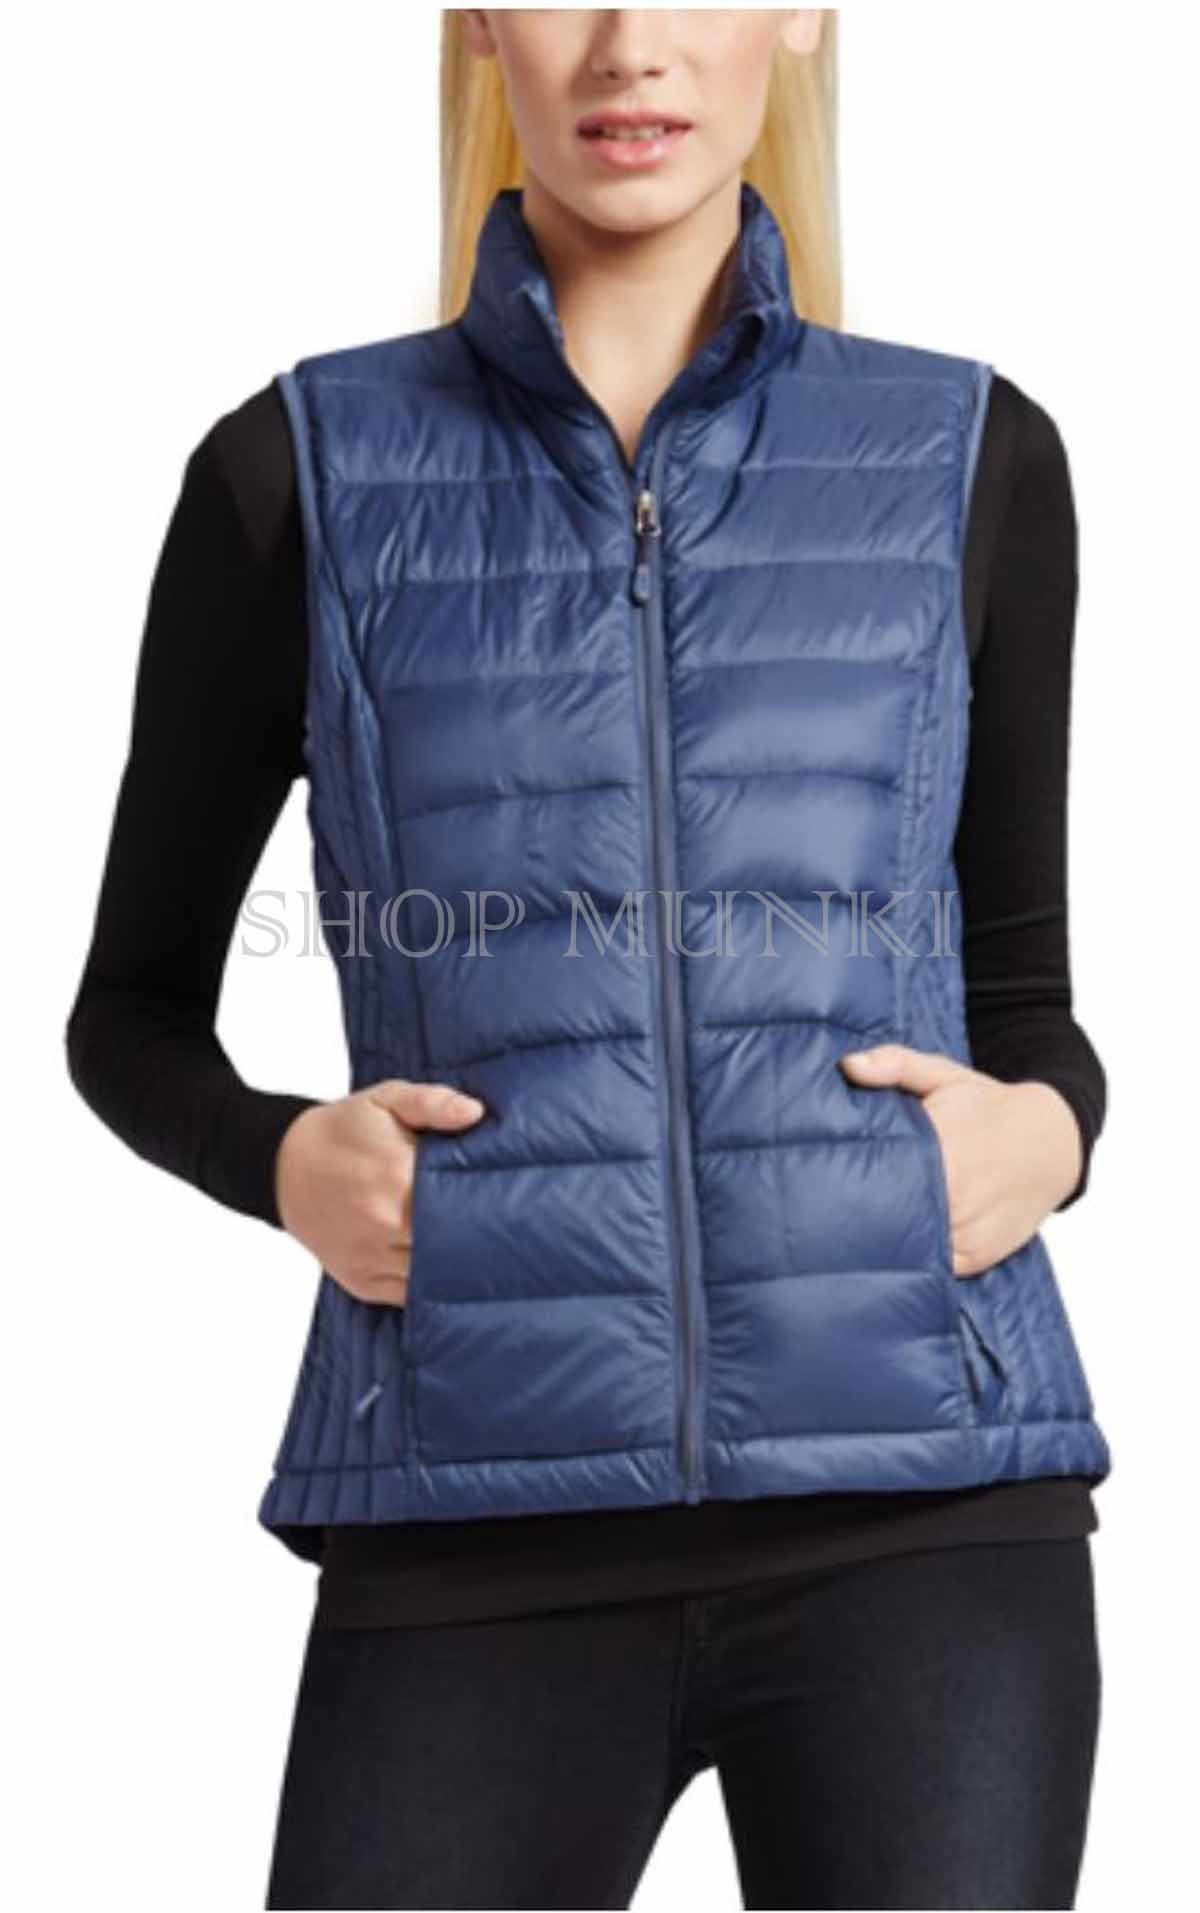 Shop for Men's Vests at REI - FREE SHIPPING With $50 minimum purchase. Top quality, great selection and expert advice you can trust. % Satisfaction Guarantee. Shop for Men's Vests at REI - FREE SHIPPING With $50 minimum purchase. Top quality, great selection and expert advice you can trust. % Satisfaction Guarantee Nano-Air Light.